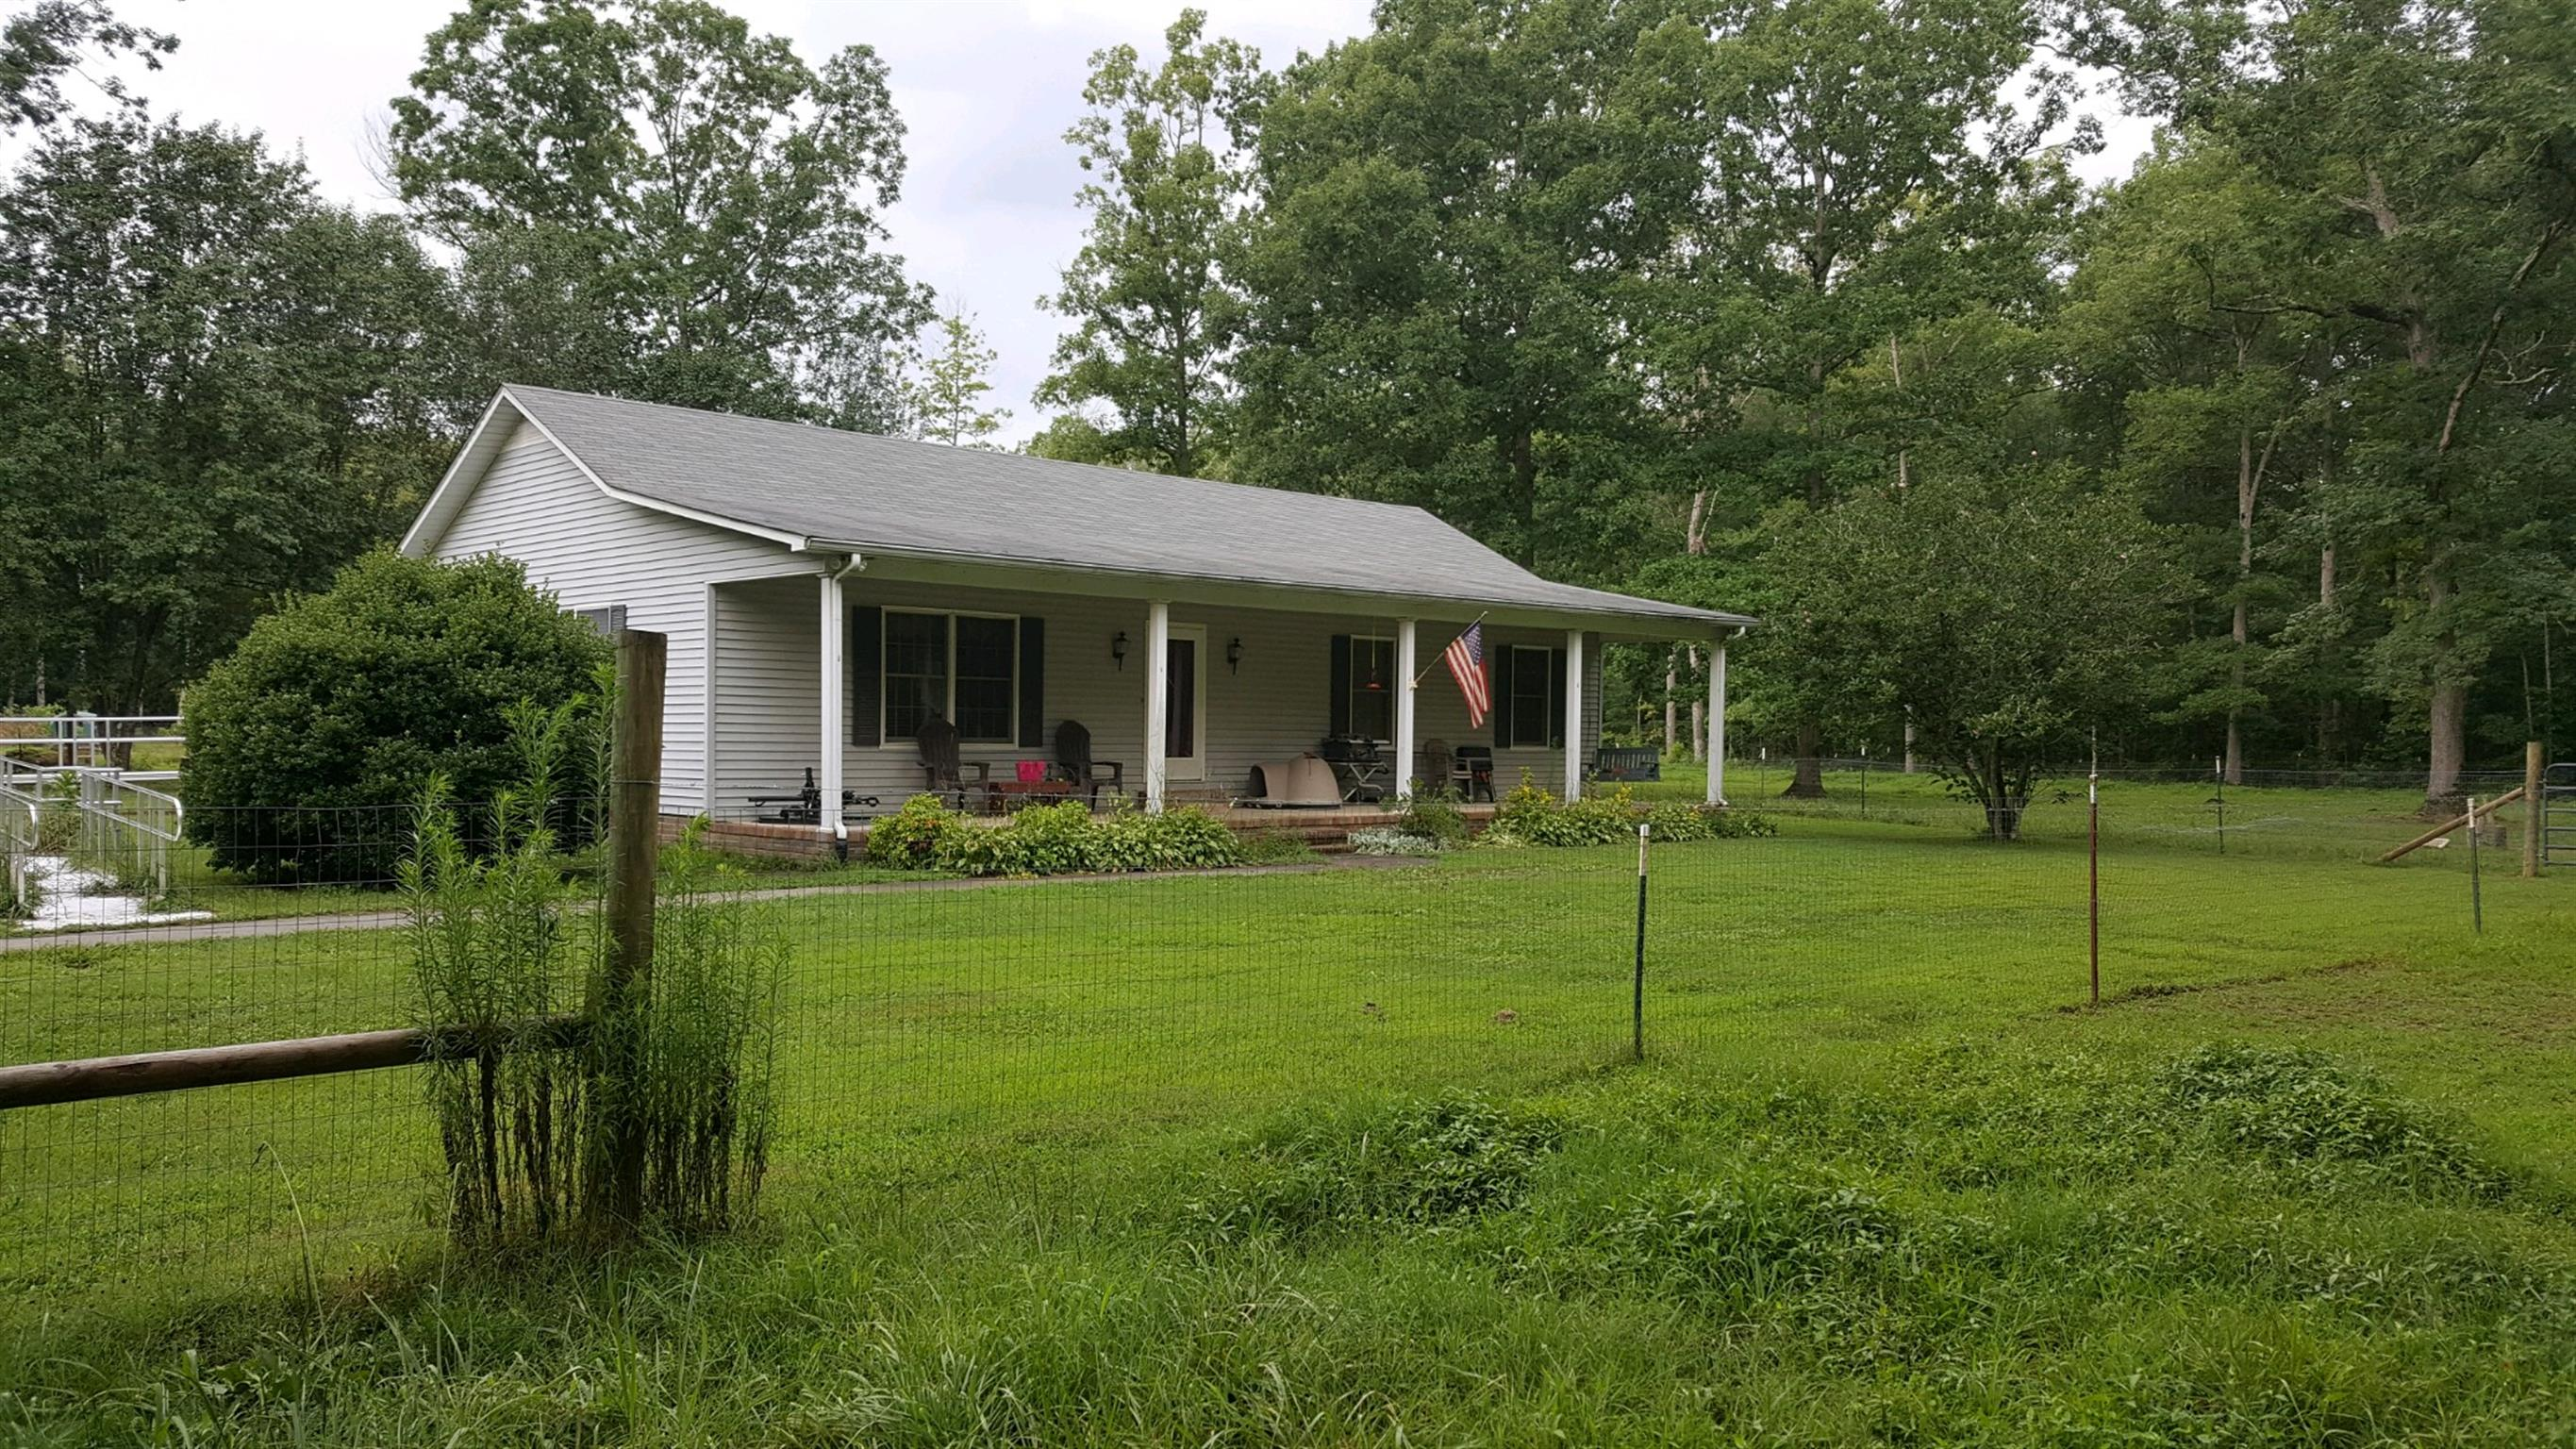 308 Motlow Ct, Wartrace, TN 37183 - Wartrace, TN real estate listing